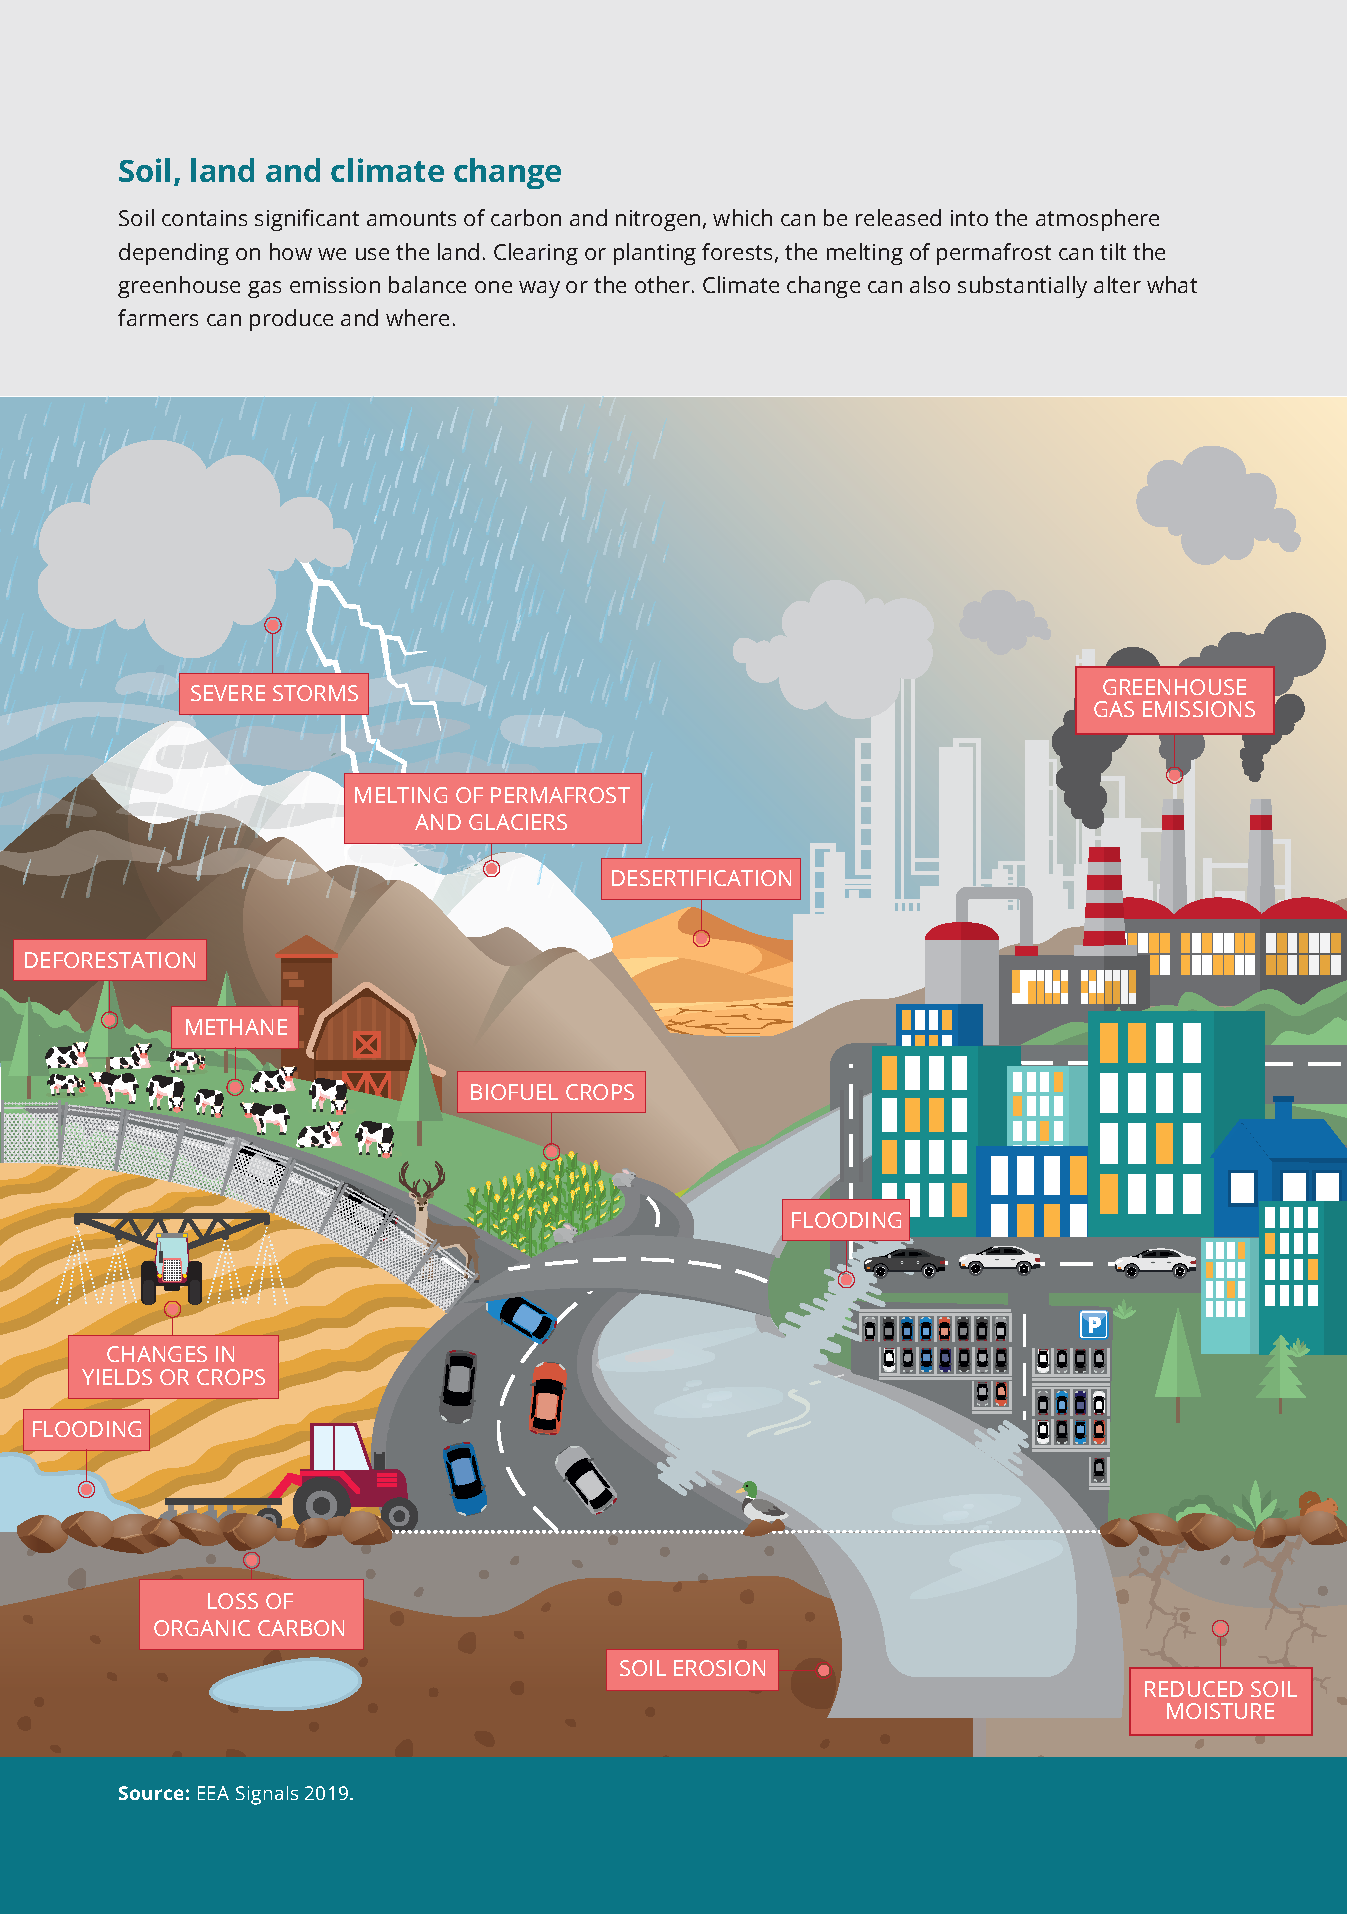 Soil contains significant amounts of carbon and nitrogen, which can be released into the atmospheredepending on how we use the land. Clearing or planting forests, the melting of permafrost can tilt thegreenhouse gas emission balance one way or the other. Climate change can also substantially alter whatfarmers can produce and where.